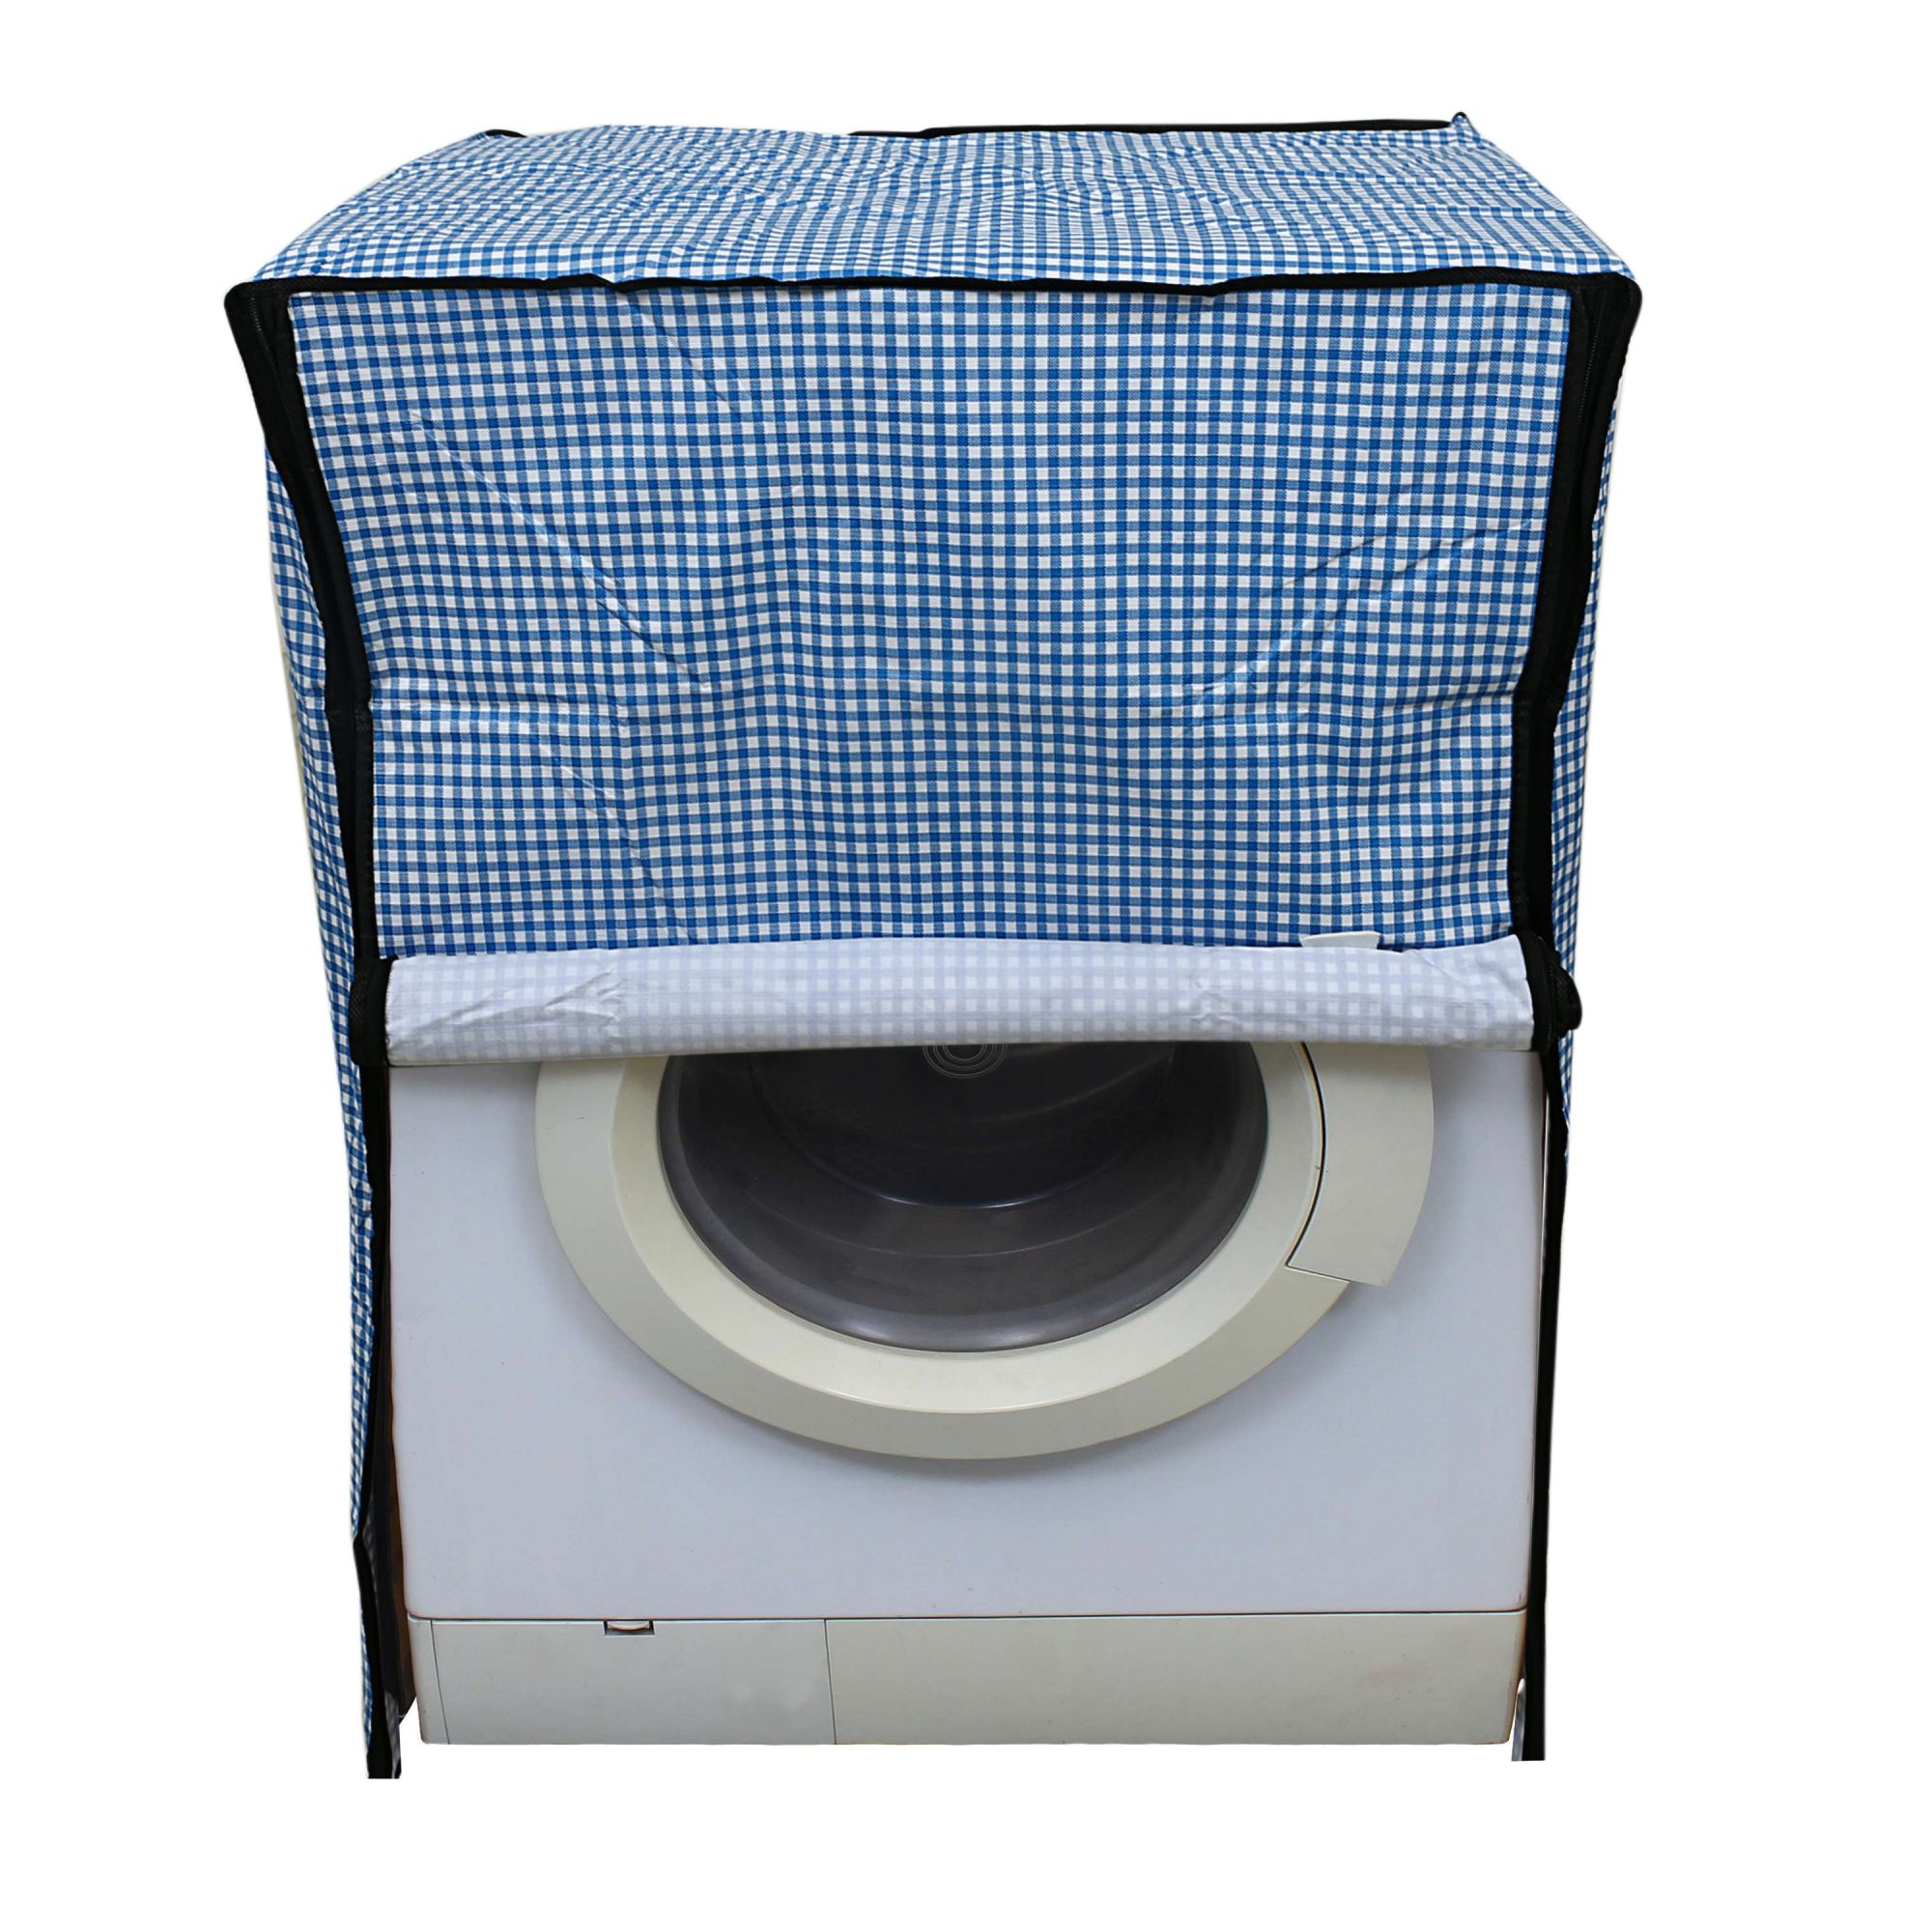 Kuber Industries PVC Front Load Fully Automatic Washing Machine Cover (Blue)-CTKTC3528